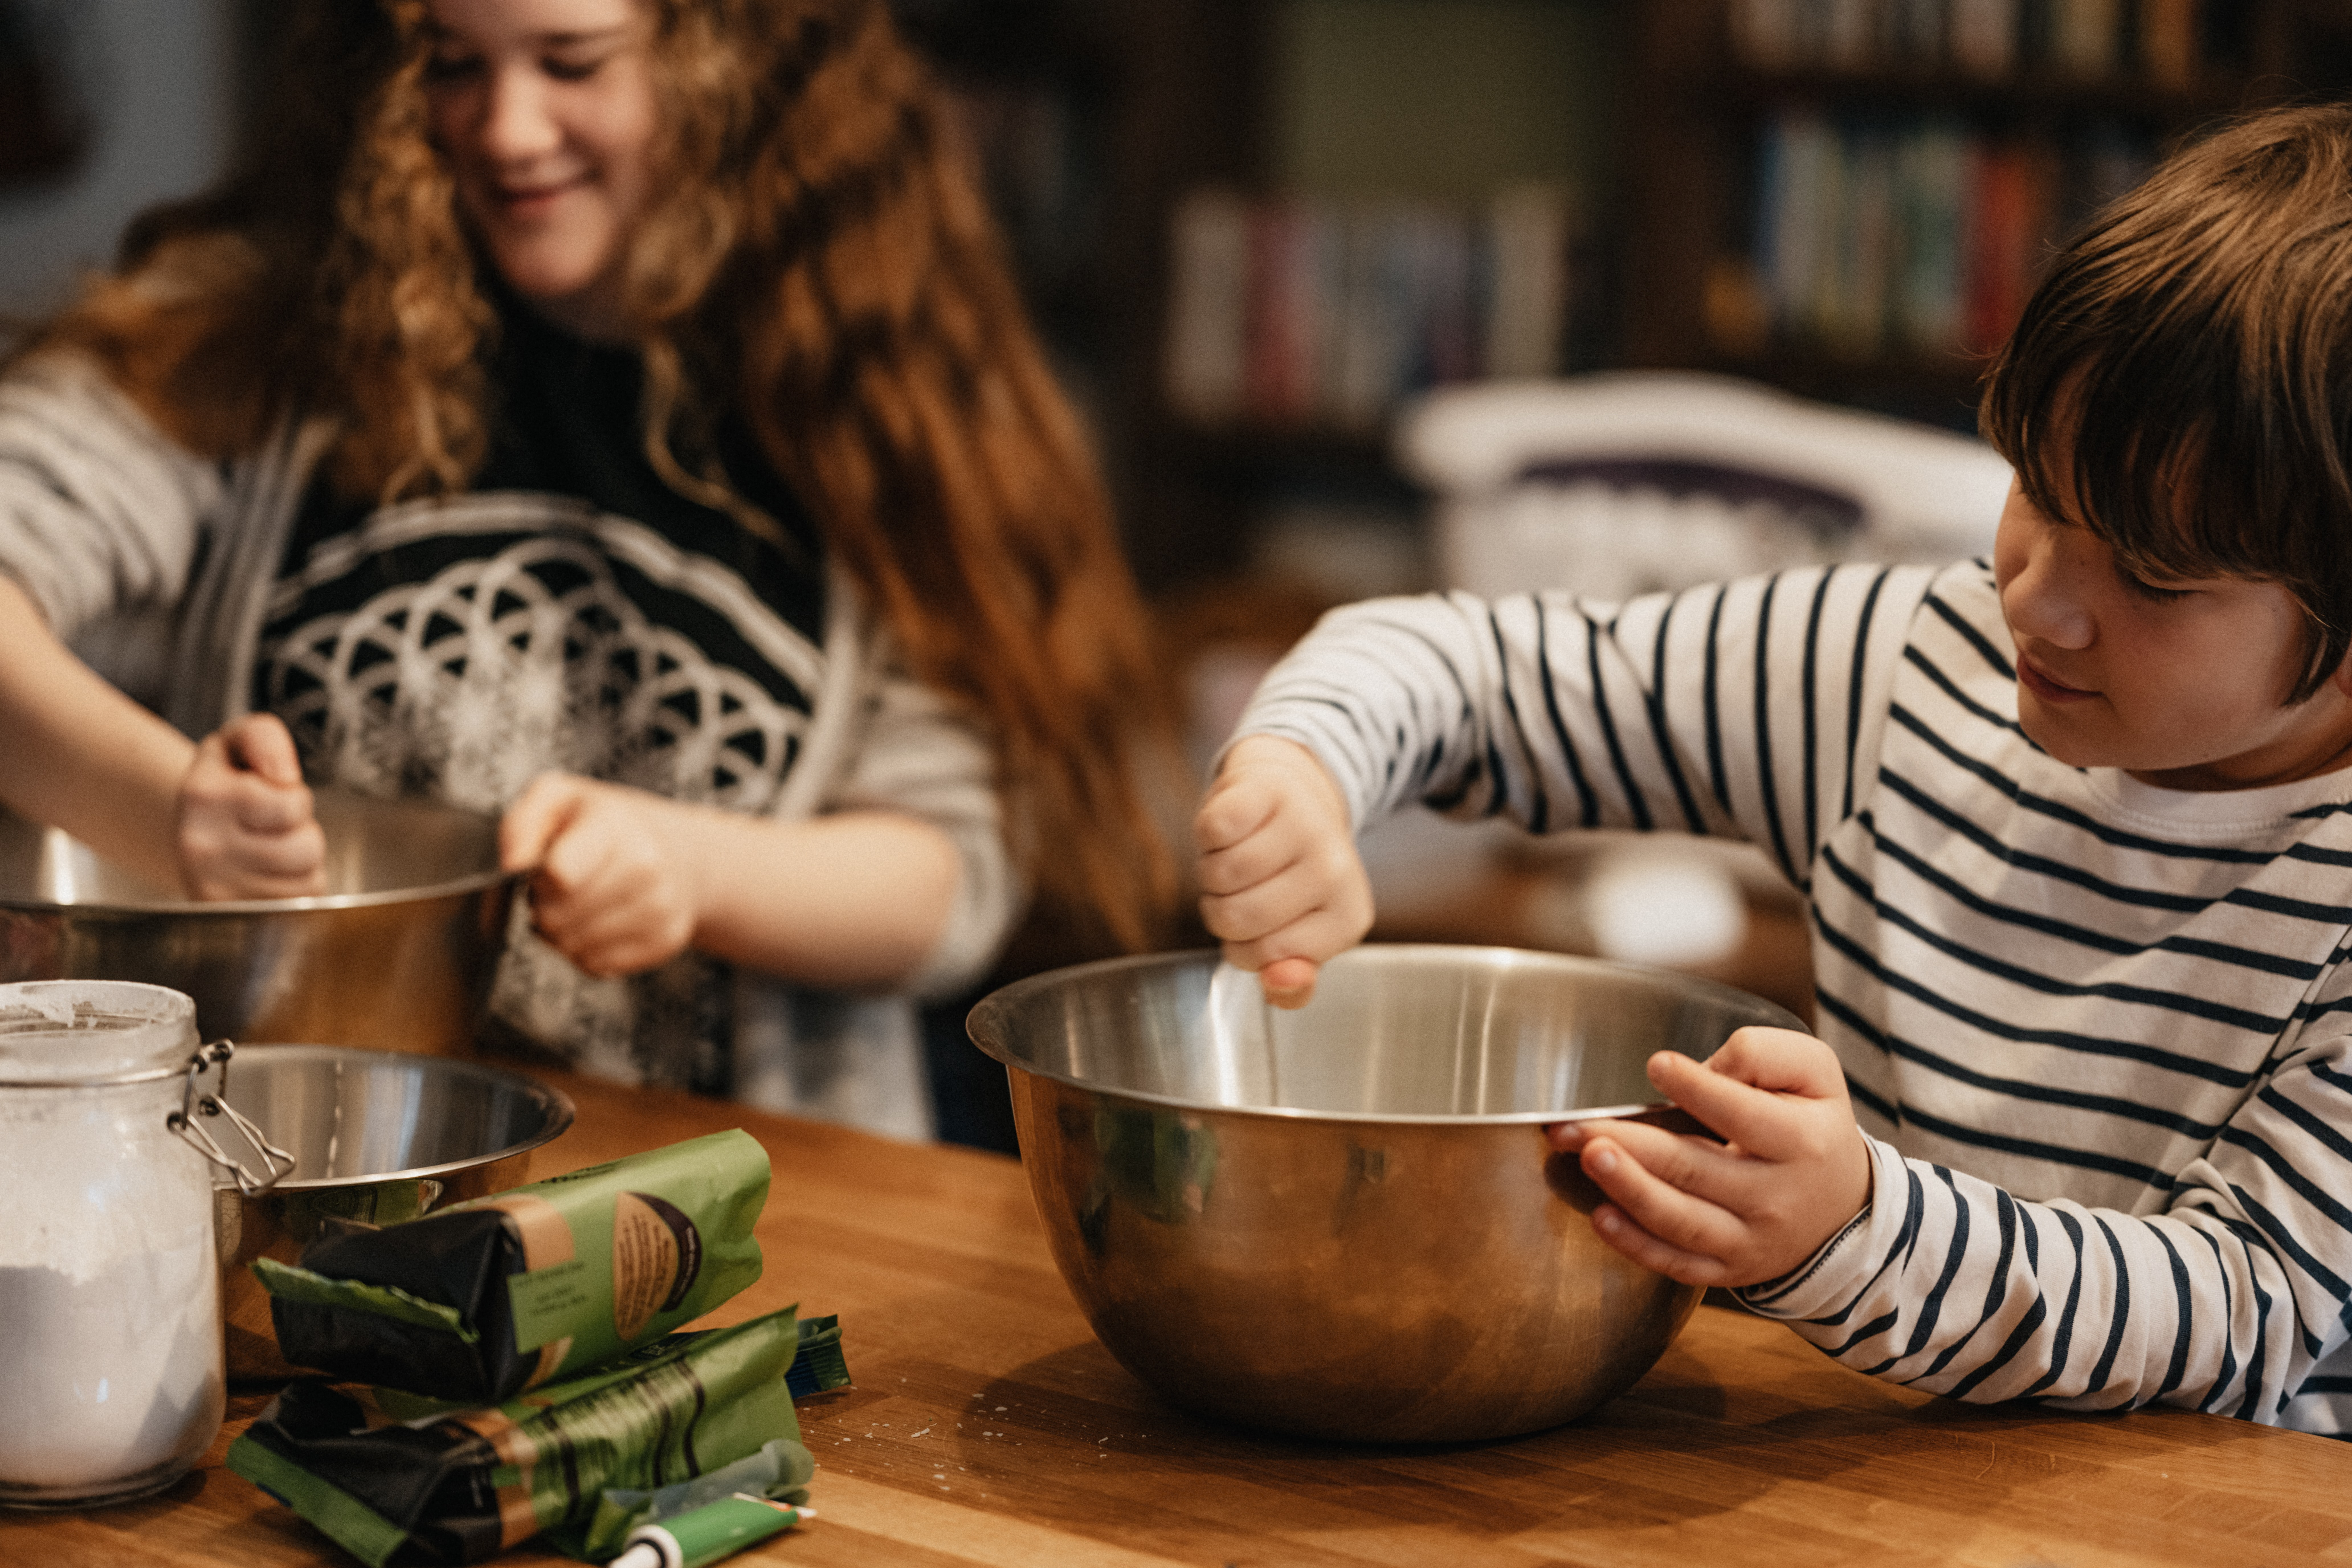 Baking and cooking are some of the afforable activities for families.